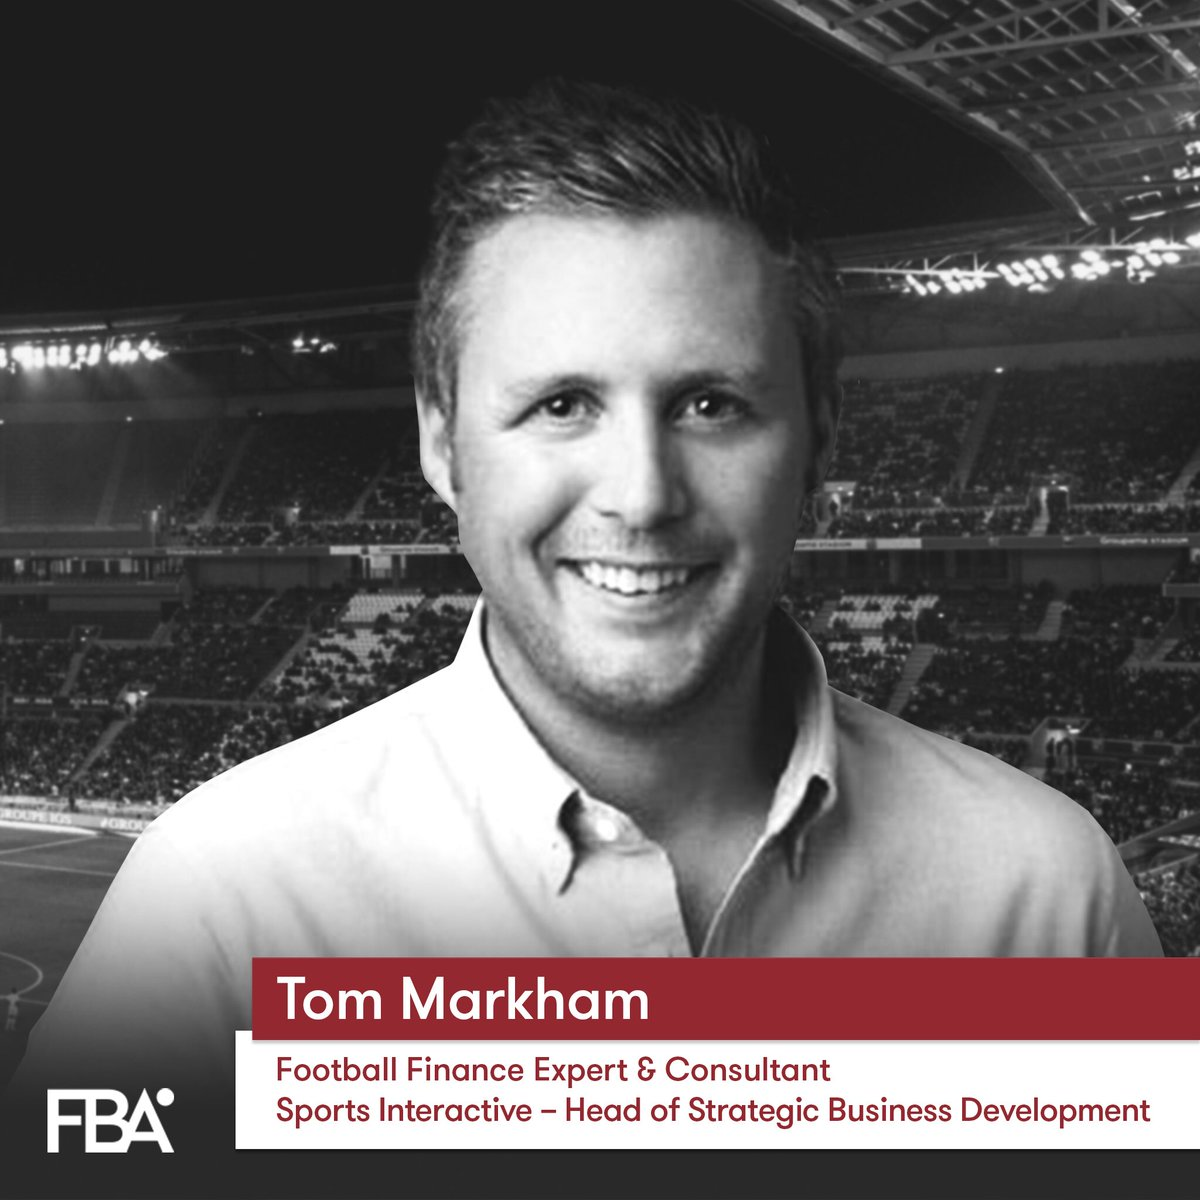 Welcoming Dr. Tom Markham to deliver a masterclass on club valuation models using his experience with multiple @premierleague clubs. Fáilte Tom! #FootballFinance